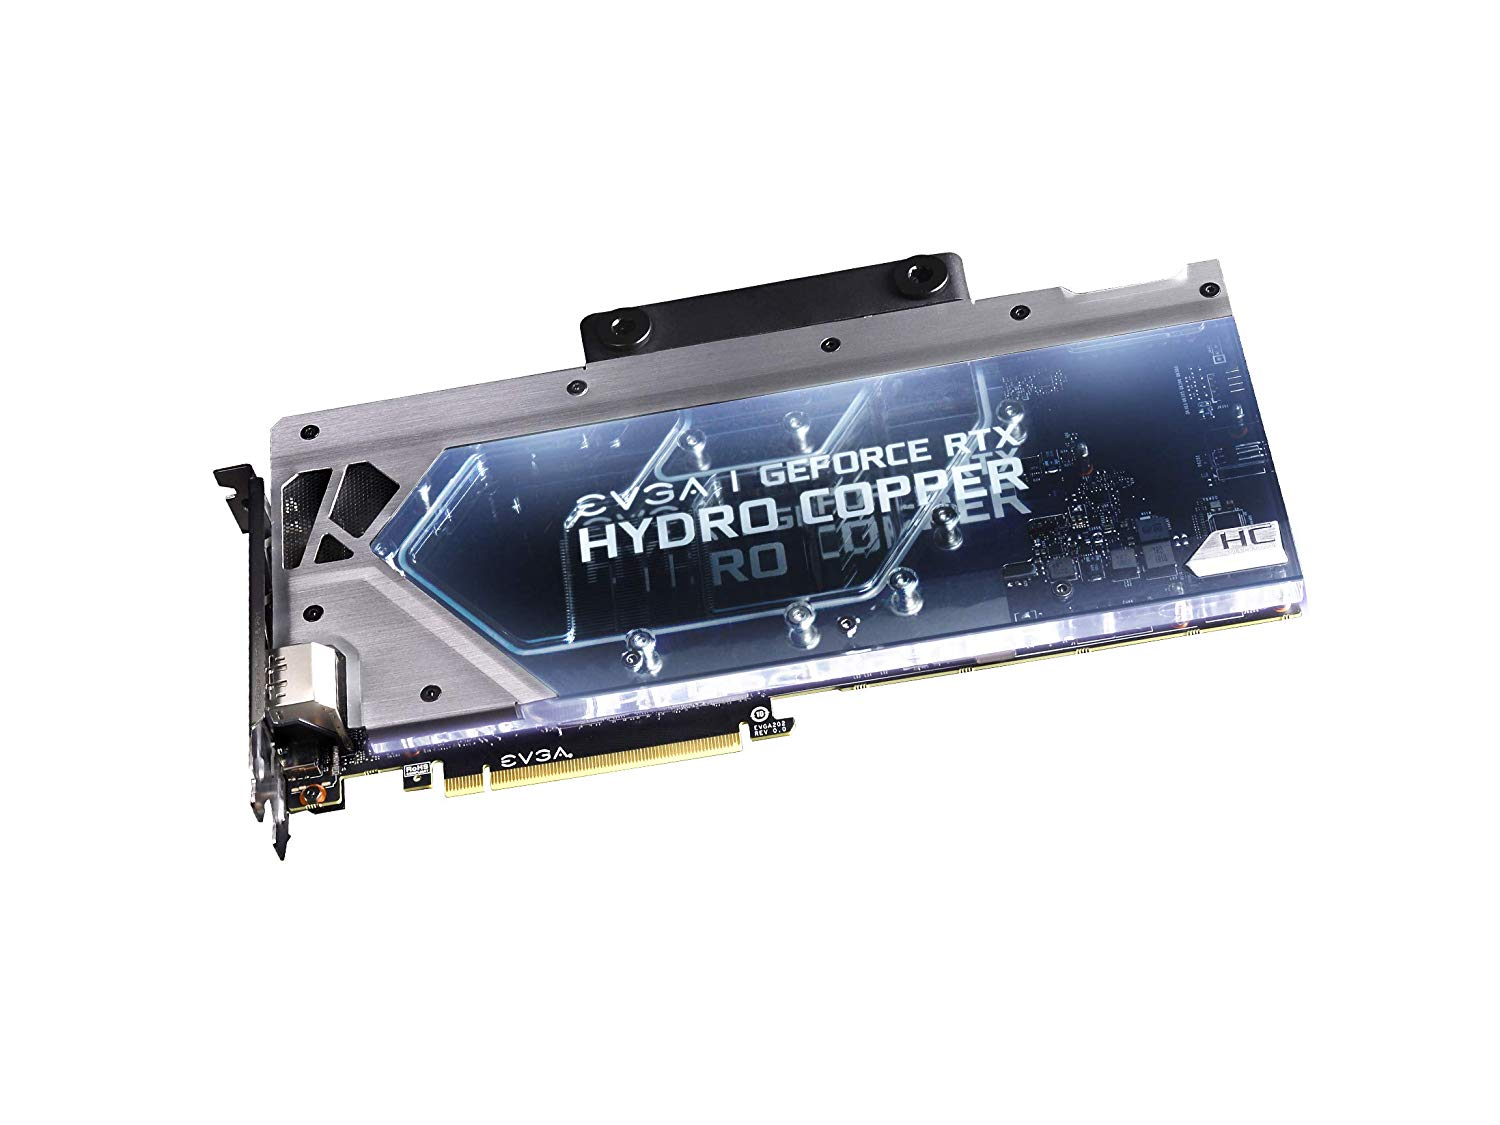 EVGA GeForce RTX 2080 Ti FTW3 Hydro Copper Warzone Graphics Cards